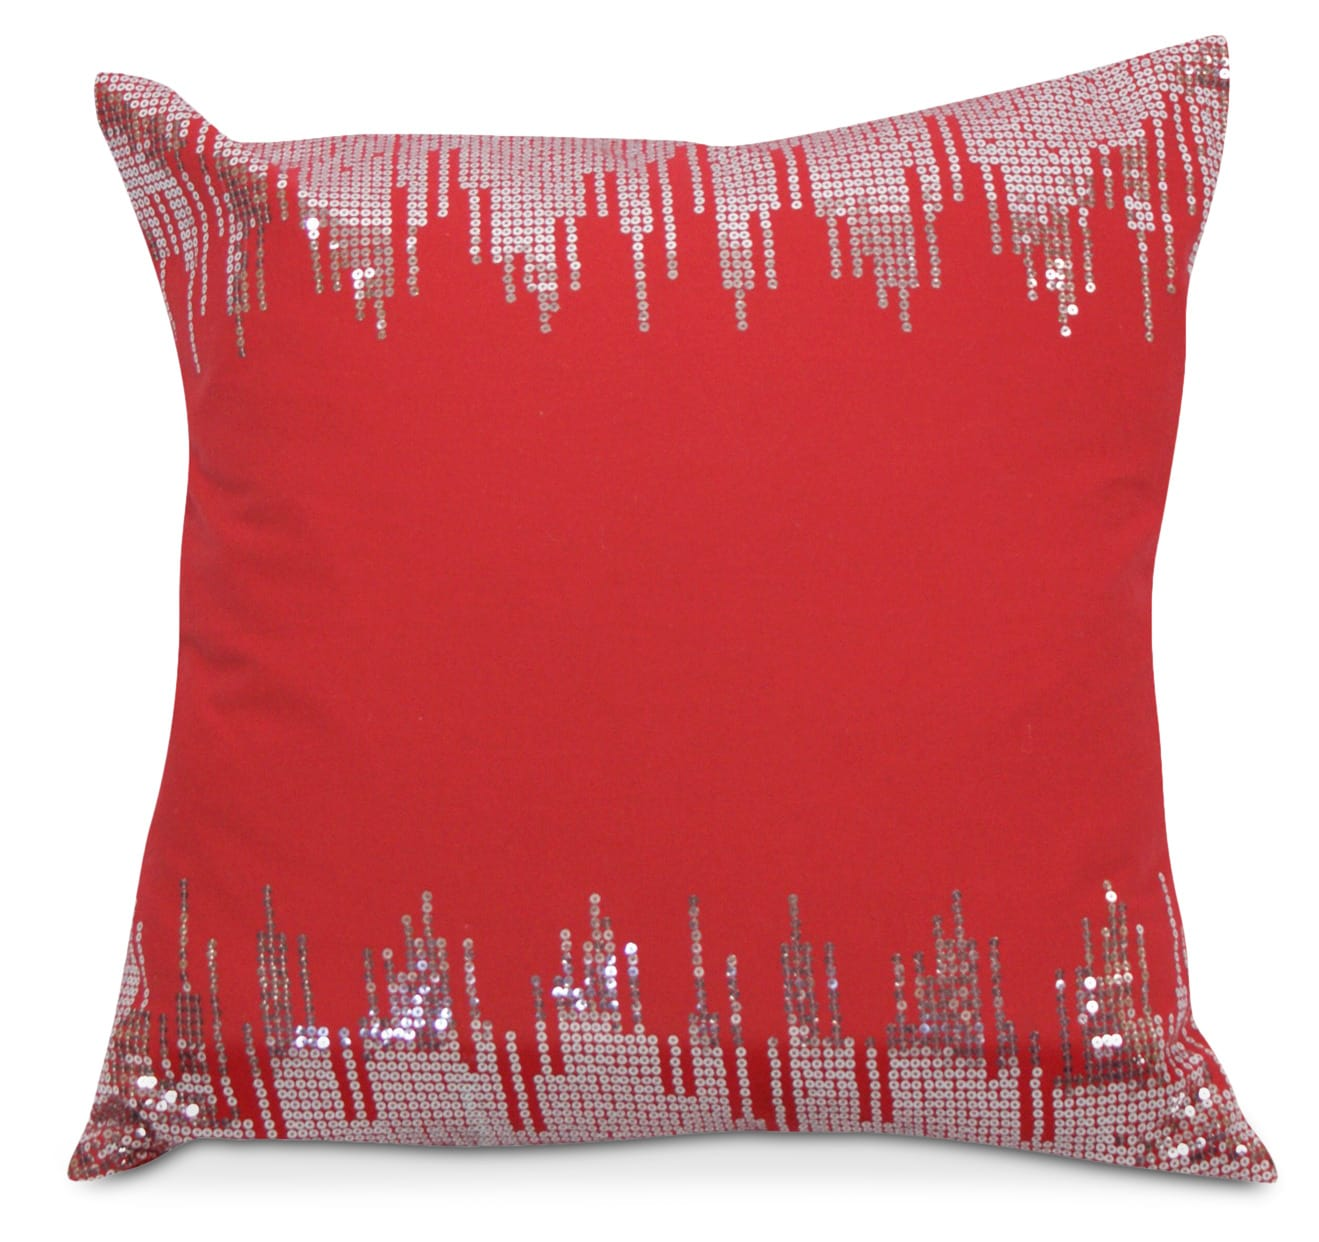 Glam Accent Pillow - Red